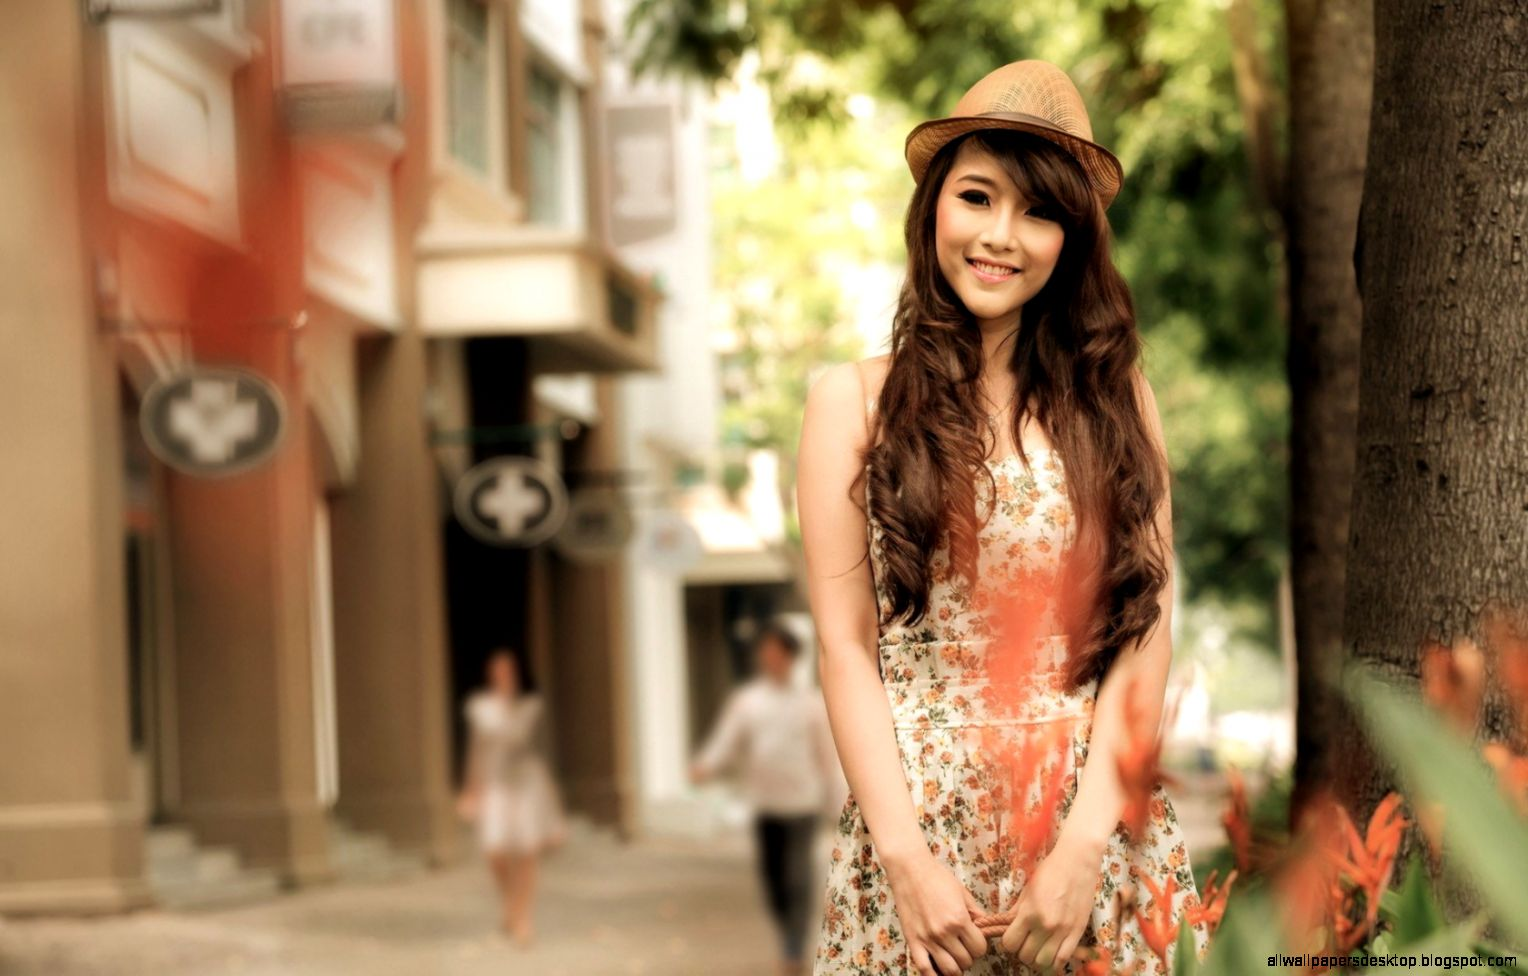 Lovely Girl Asian City Street 7022072